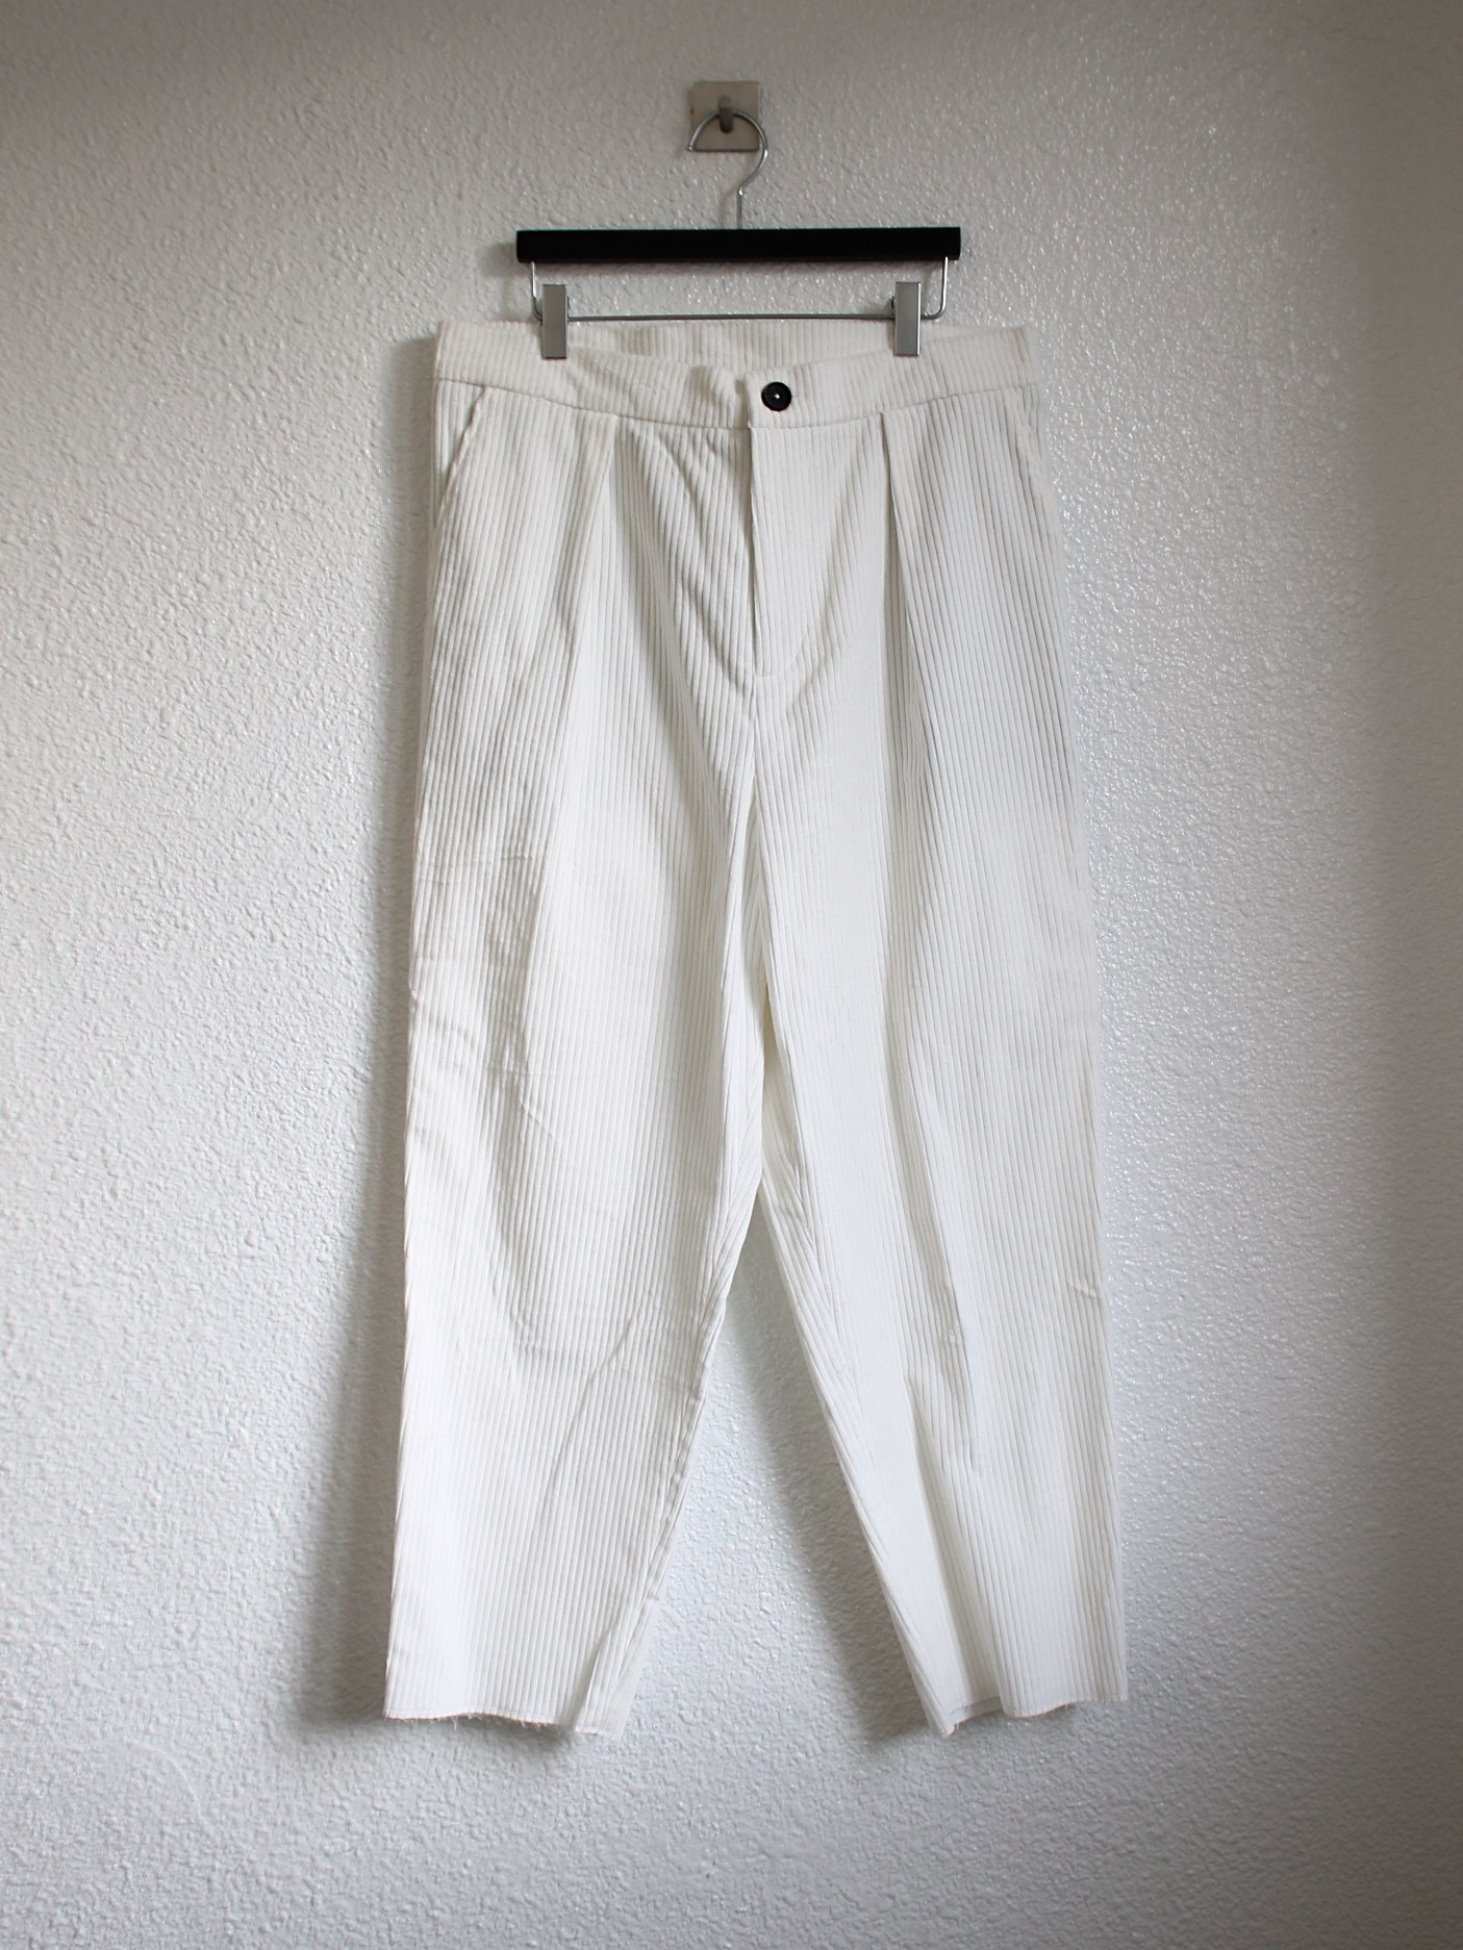 [An Irrational Element] Capa Trouser - White Corduroy